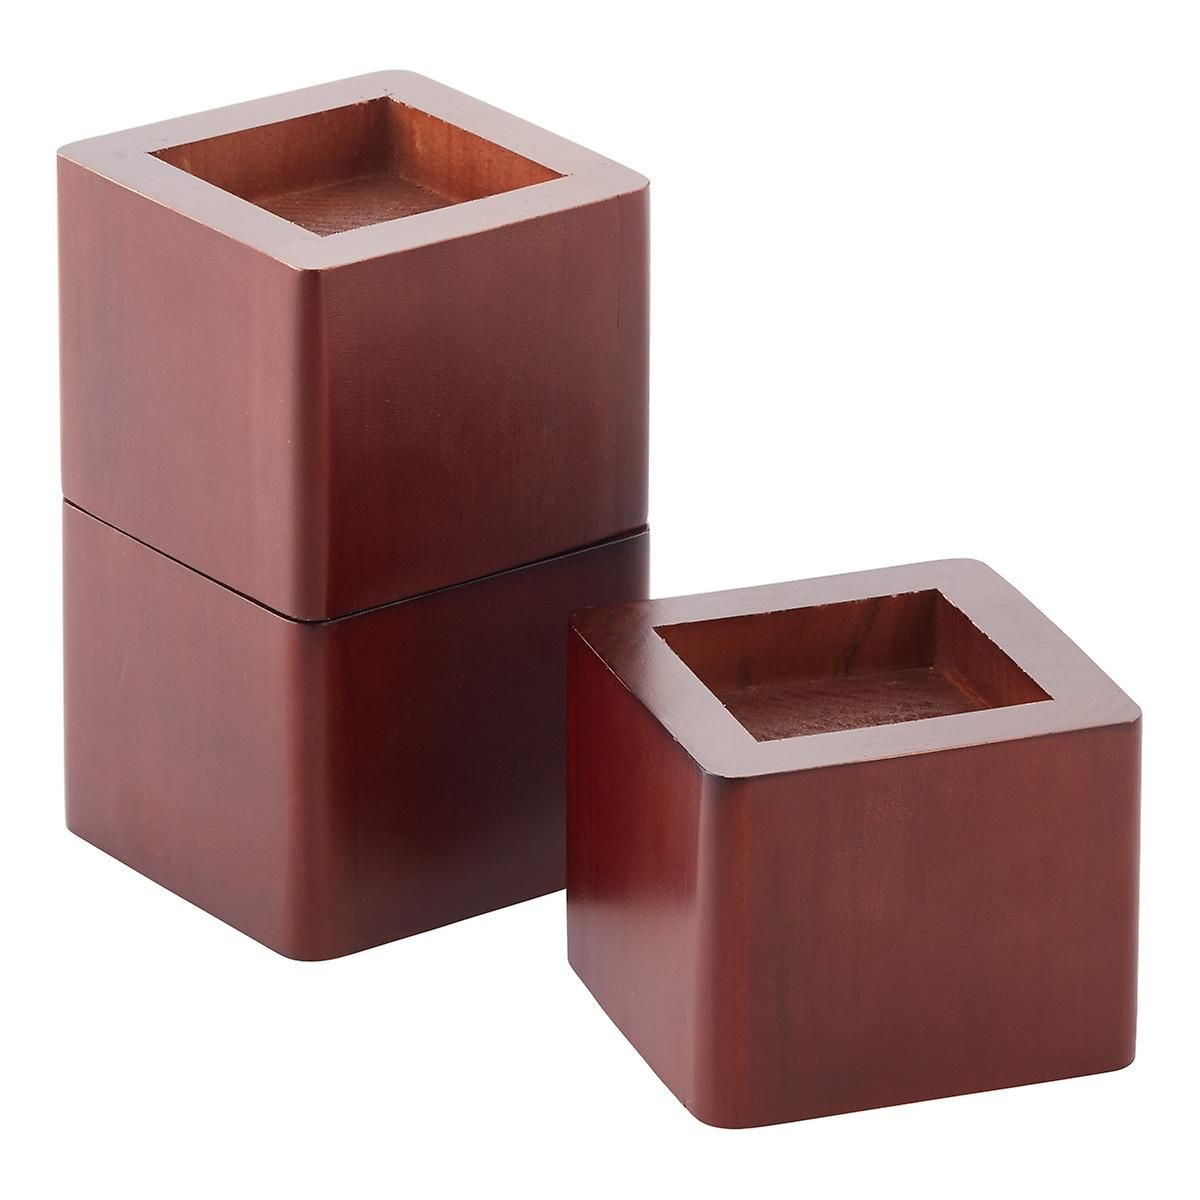 Walnut Solid Wood Bed Risers The Container Store Bed Risers Wood Bed Risers Solid Wood Bed